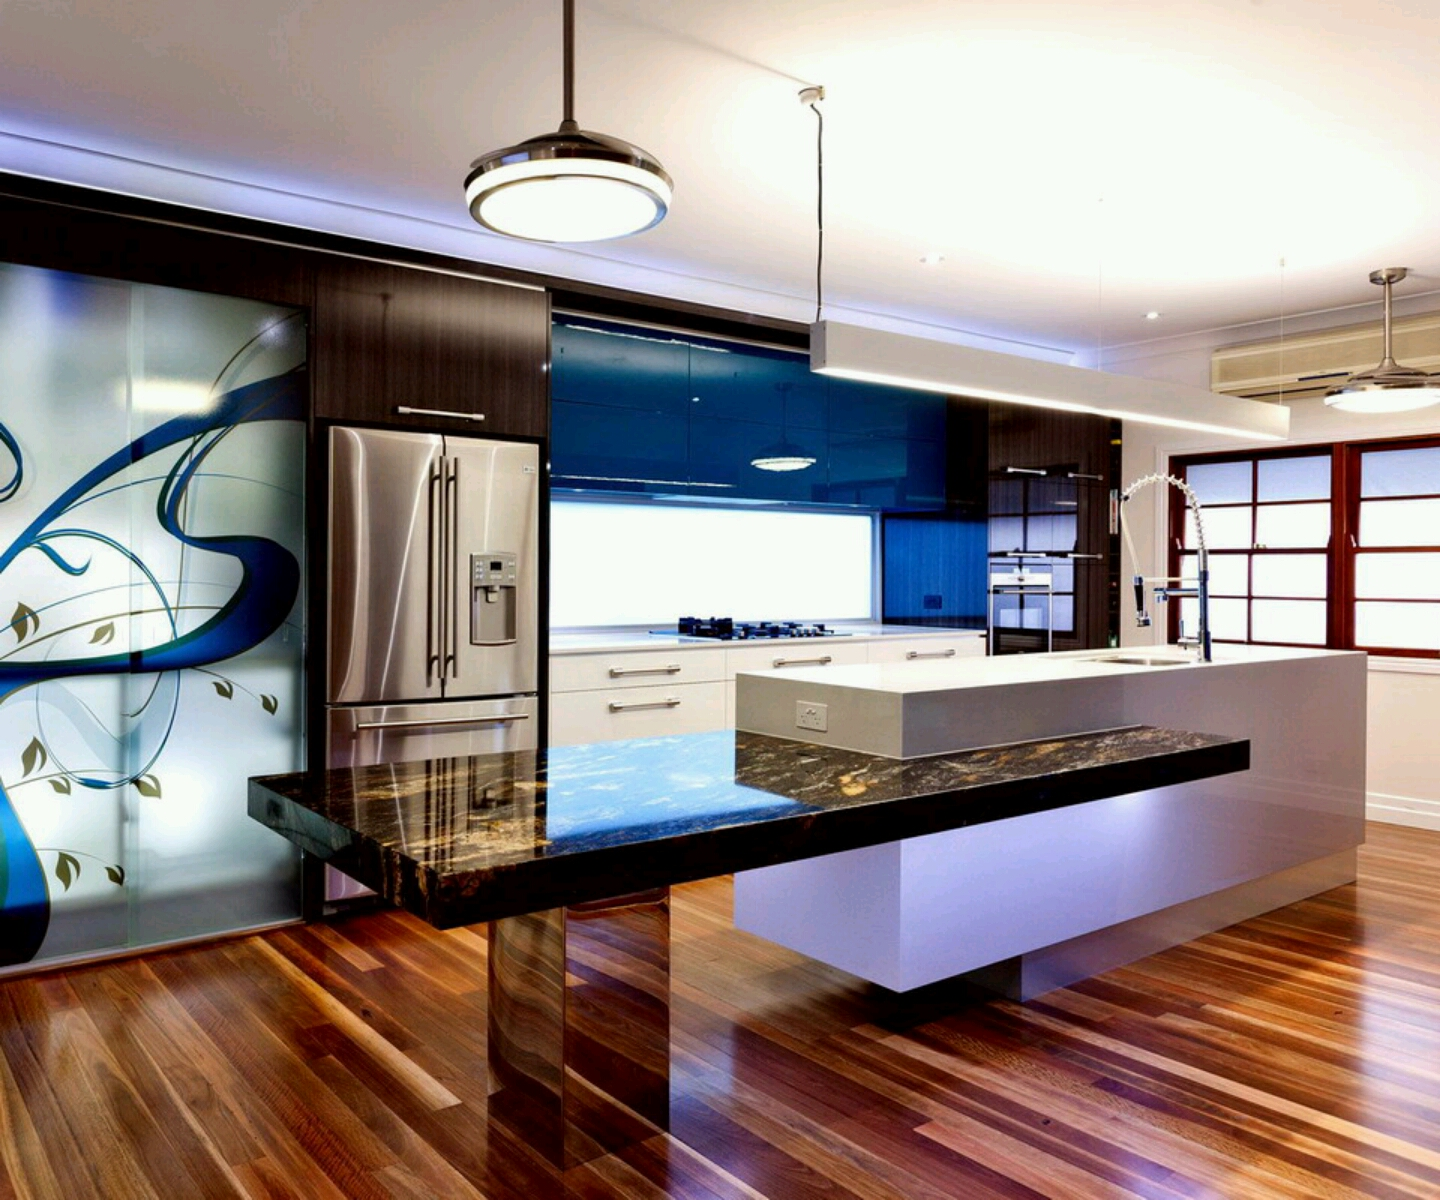 New home designs latest ultra modern kitchen designs ideas for Kitchen design modern style